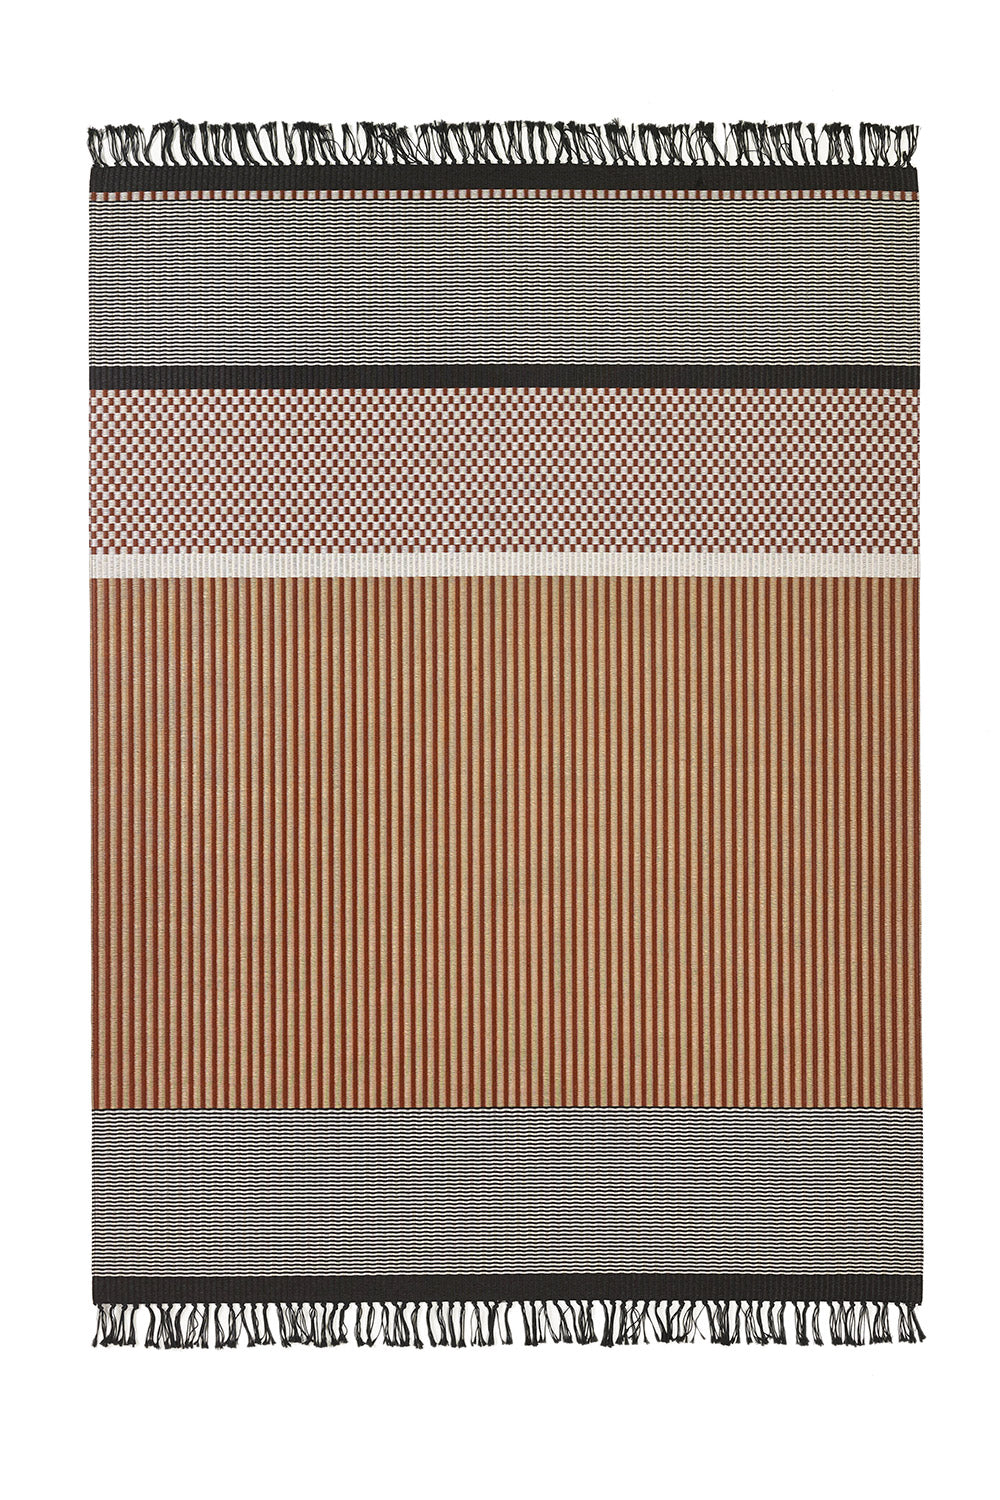 Woodnotes Carpet — Designed by Ritva Puotila